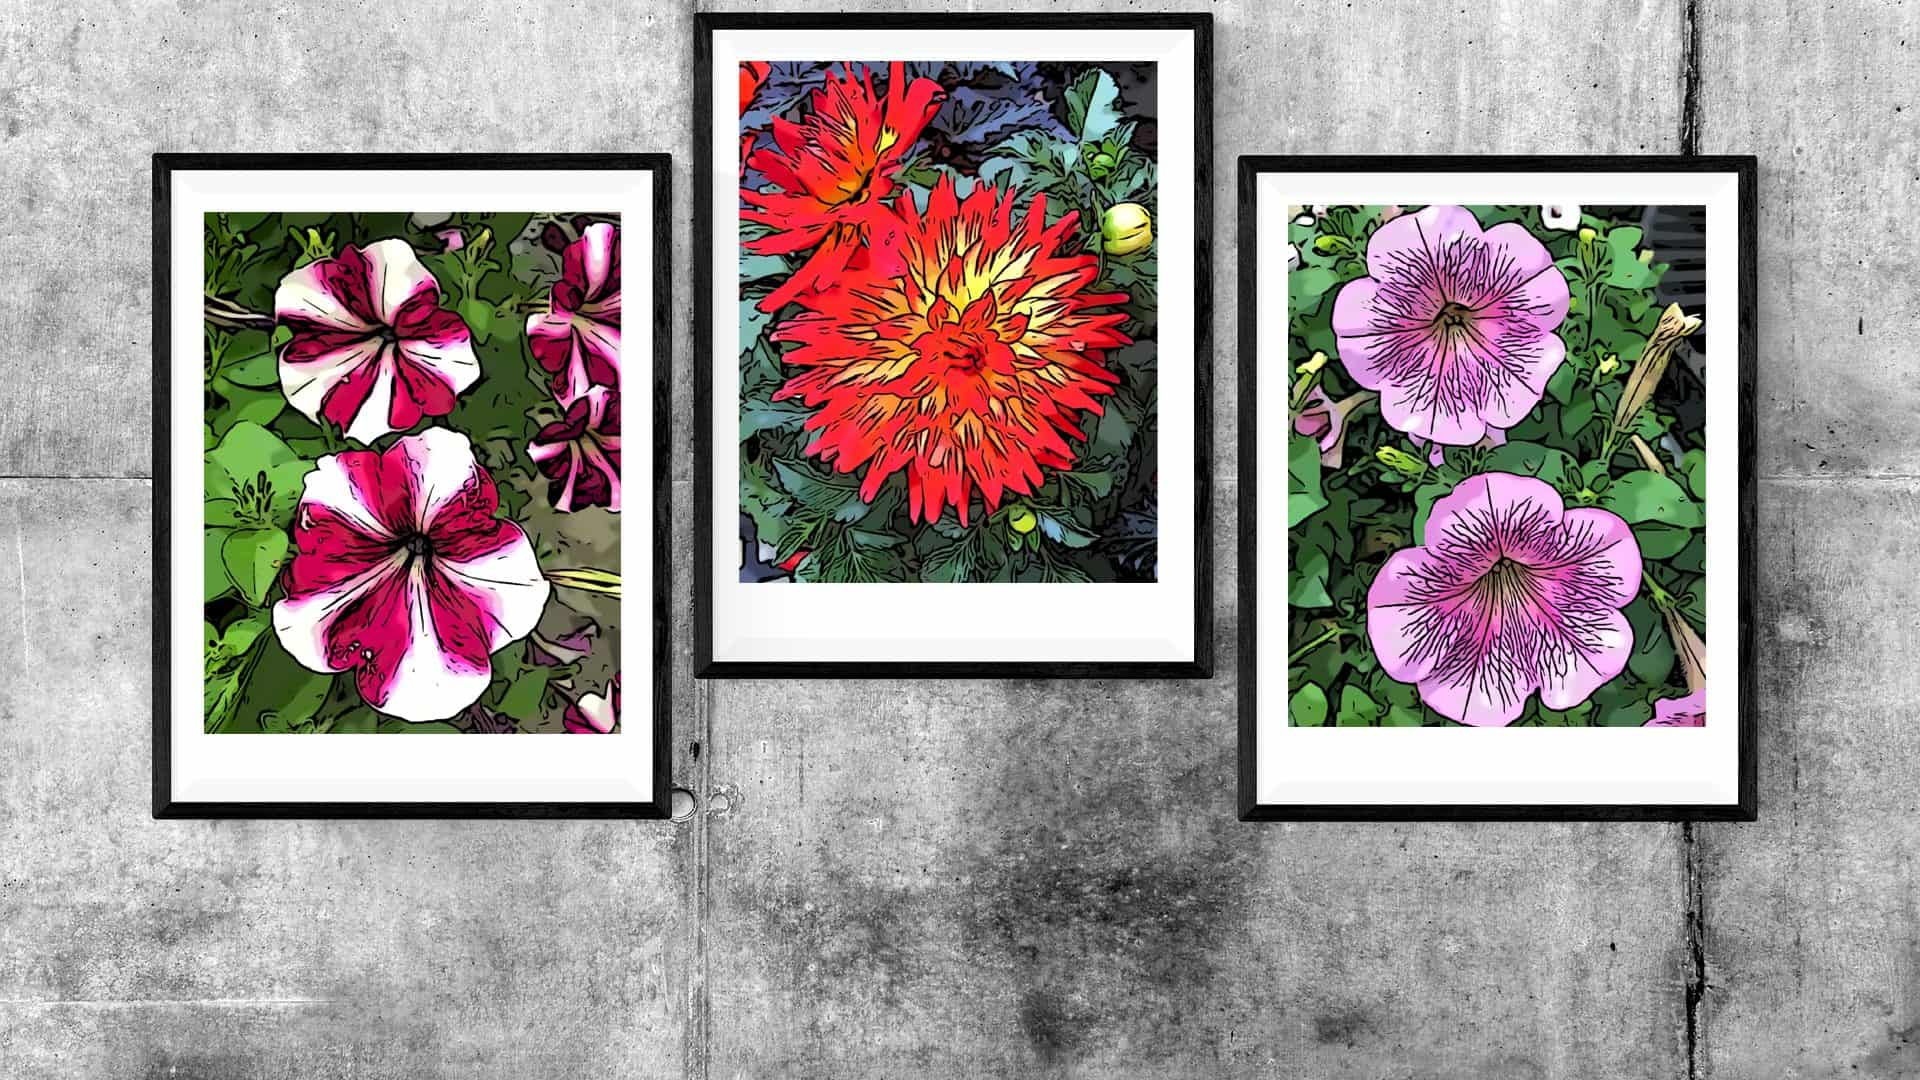 image about Free Printable Wall Art Flowers called Totally free Printable Spring Bouquets Pop Artwork Wall Decor - Creating